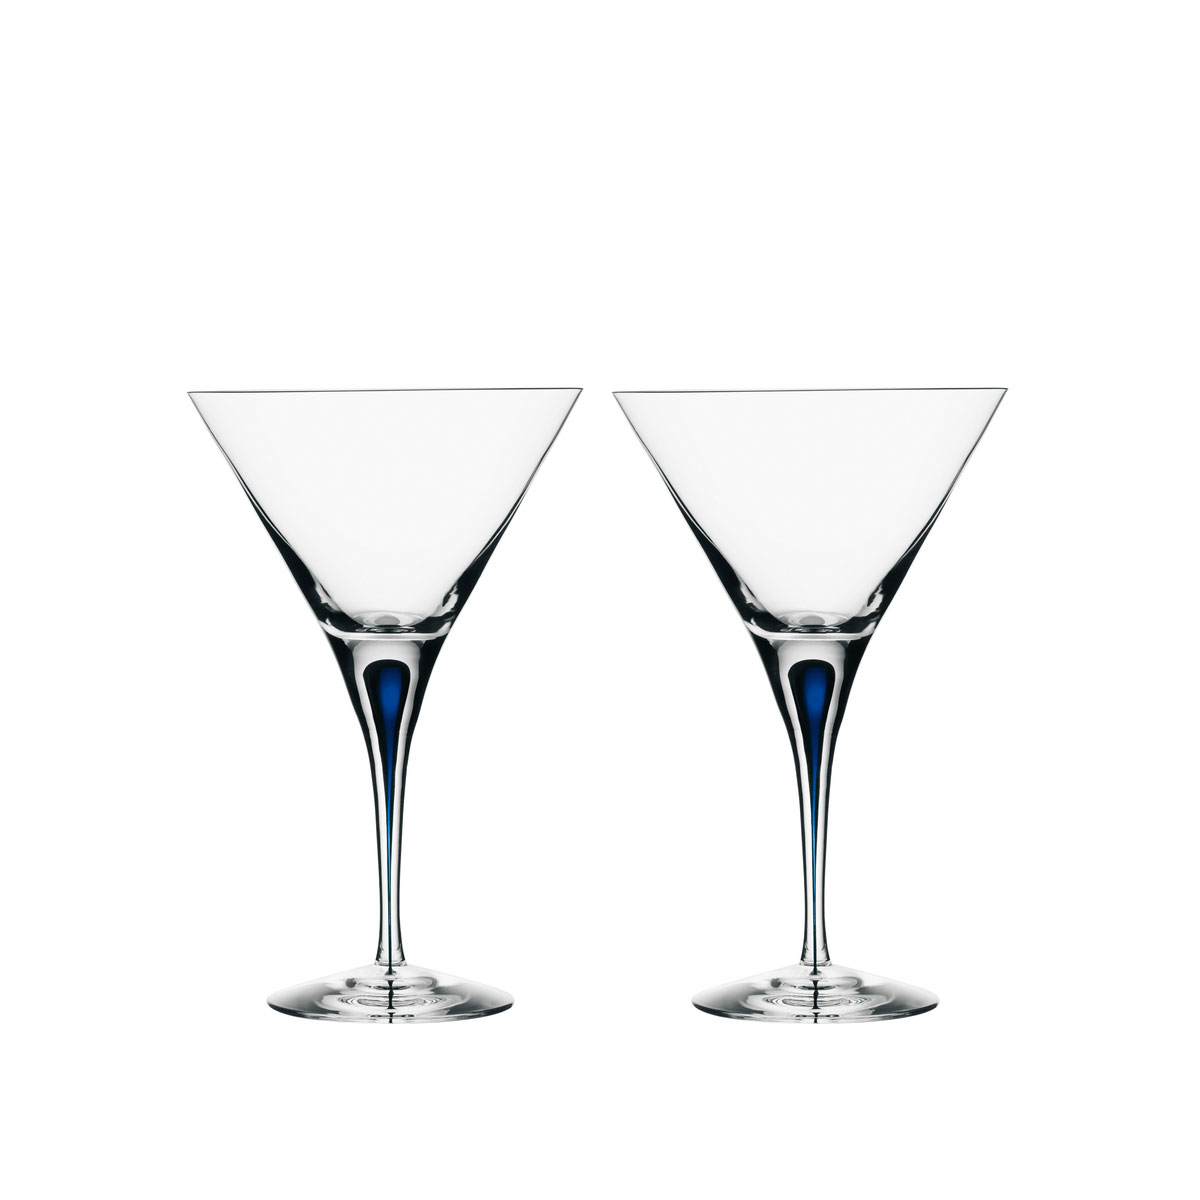 Orrefors Crystal, Intermezzo Blue Crystal Martini, Pair